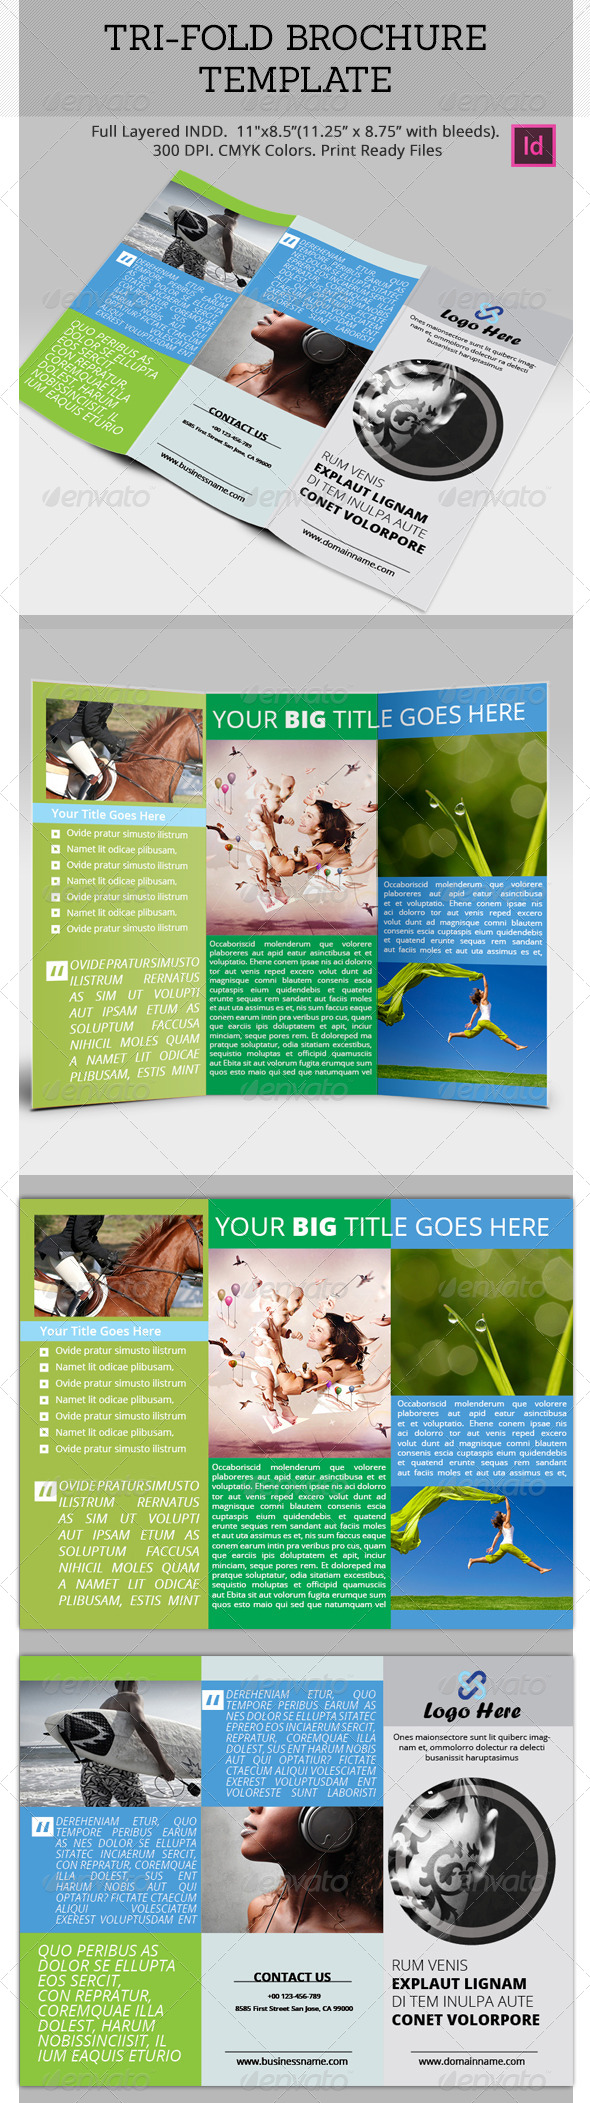 GraphicRiver Tri-Fold Brochure Template 5246981